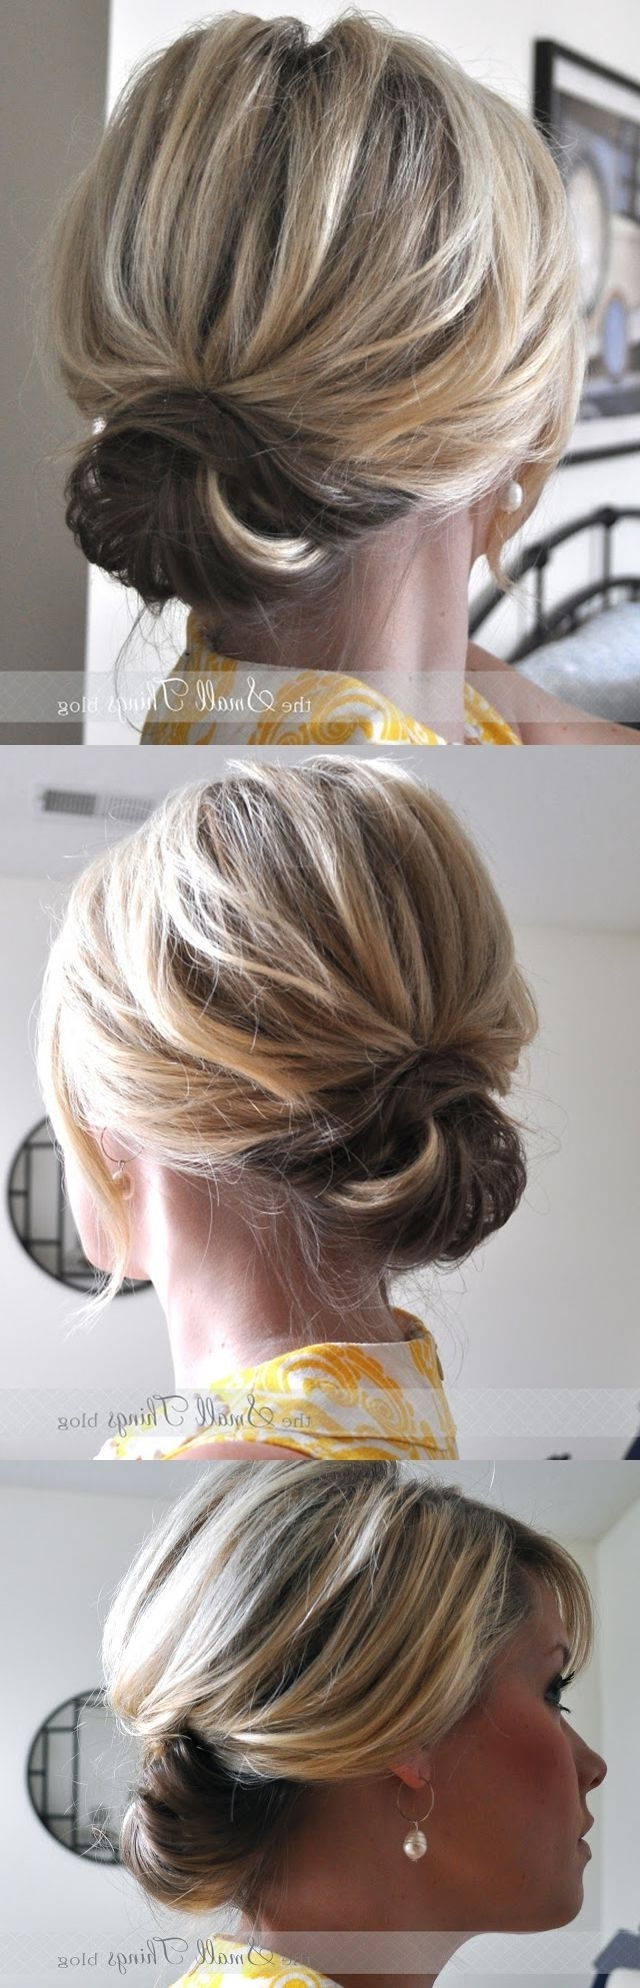 25 Best Wedding Updos Images On Pinterest (View 12 of 15)